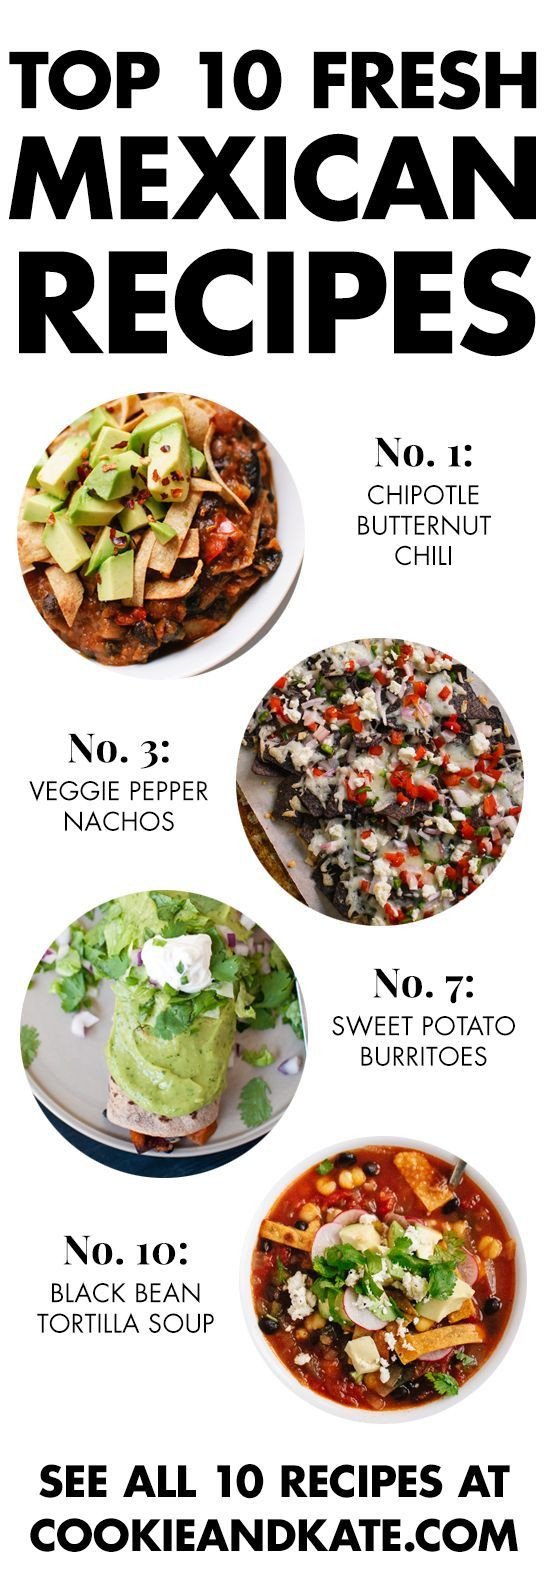 Find 10 vegetarian Mexican recipes at http://cookieandkate.com